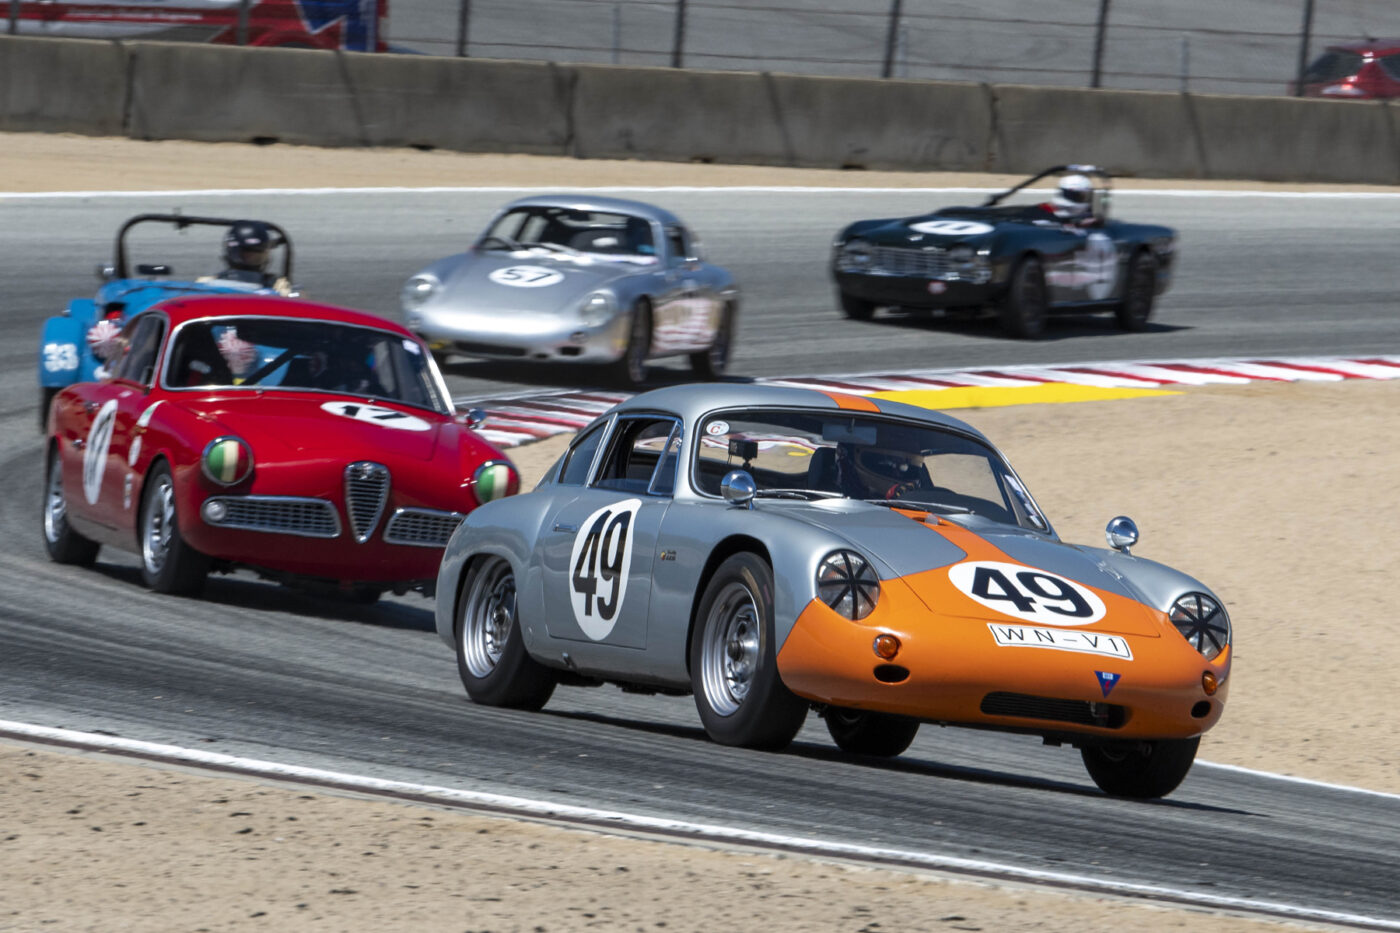 Group 1: 1955-1964 GT - Ranson Webster leads the way behind the wheel of his 1961 Porsche Abarth Carrera - ©Rex McAfee